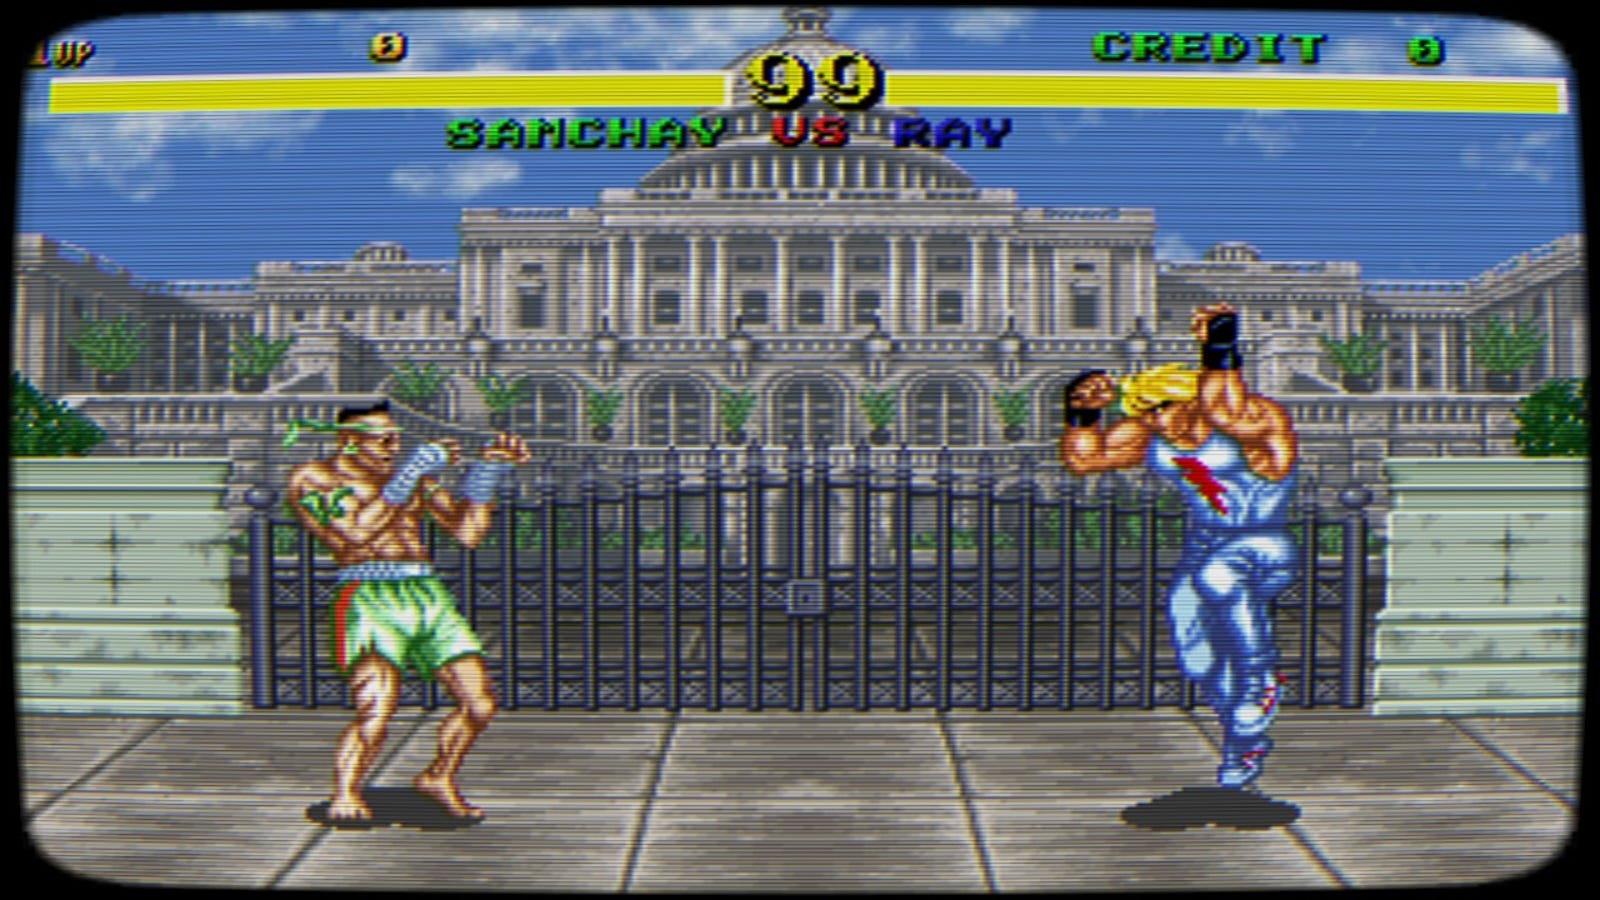 QnA VBage The Fighting Game Capcom Tried To Get Pulled From Arcades